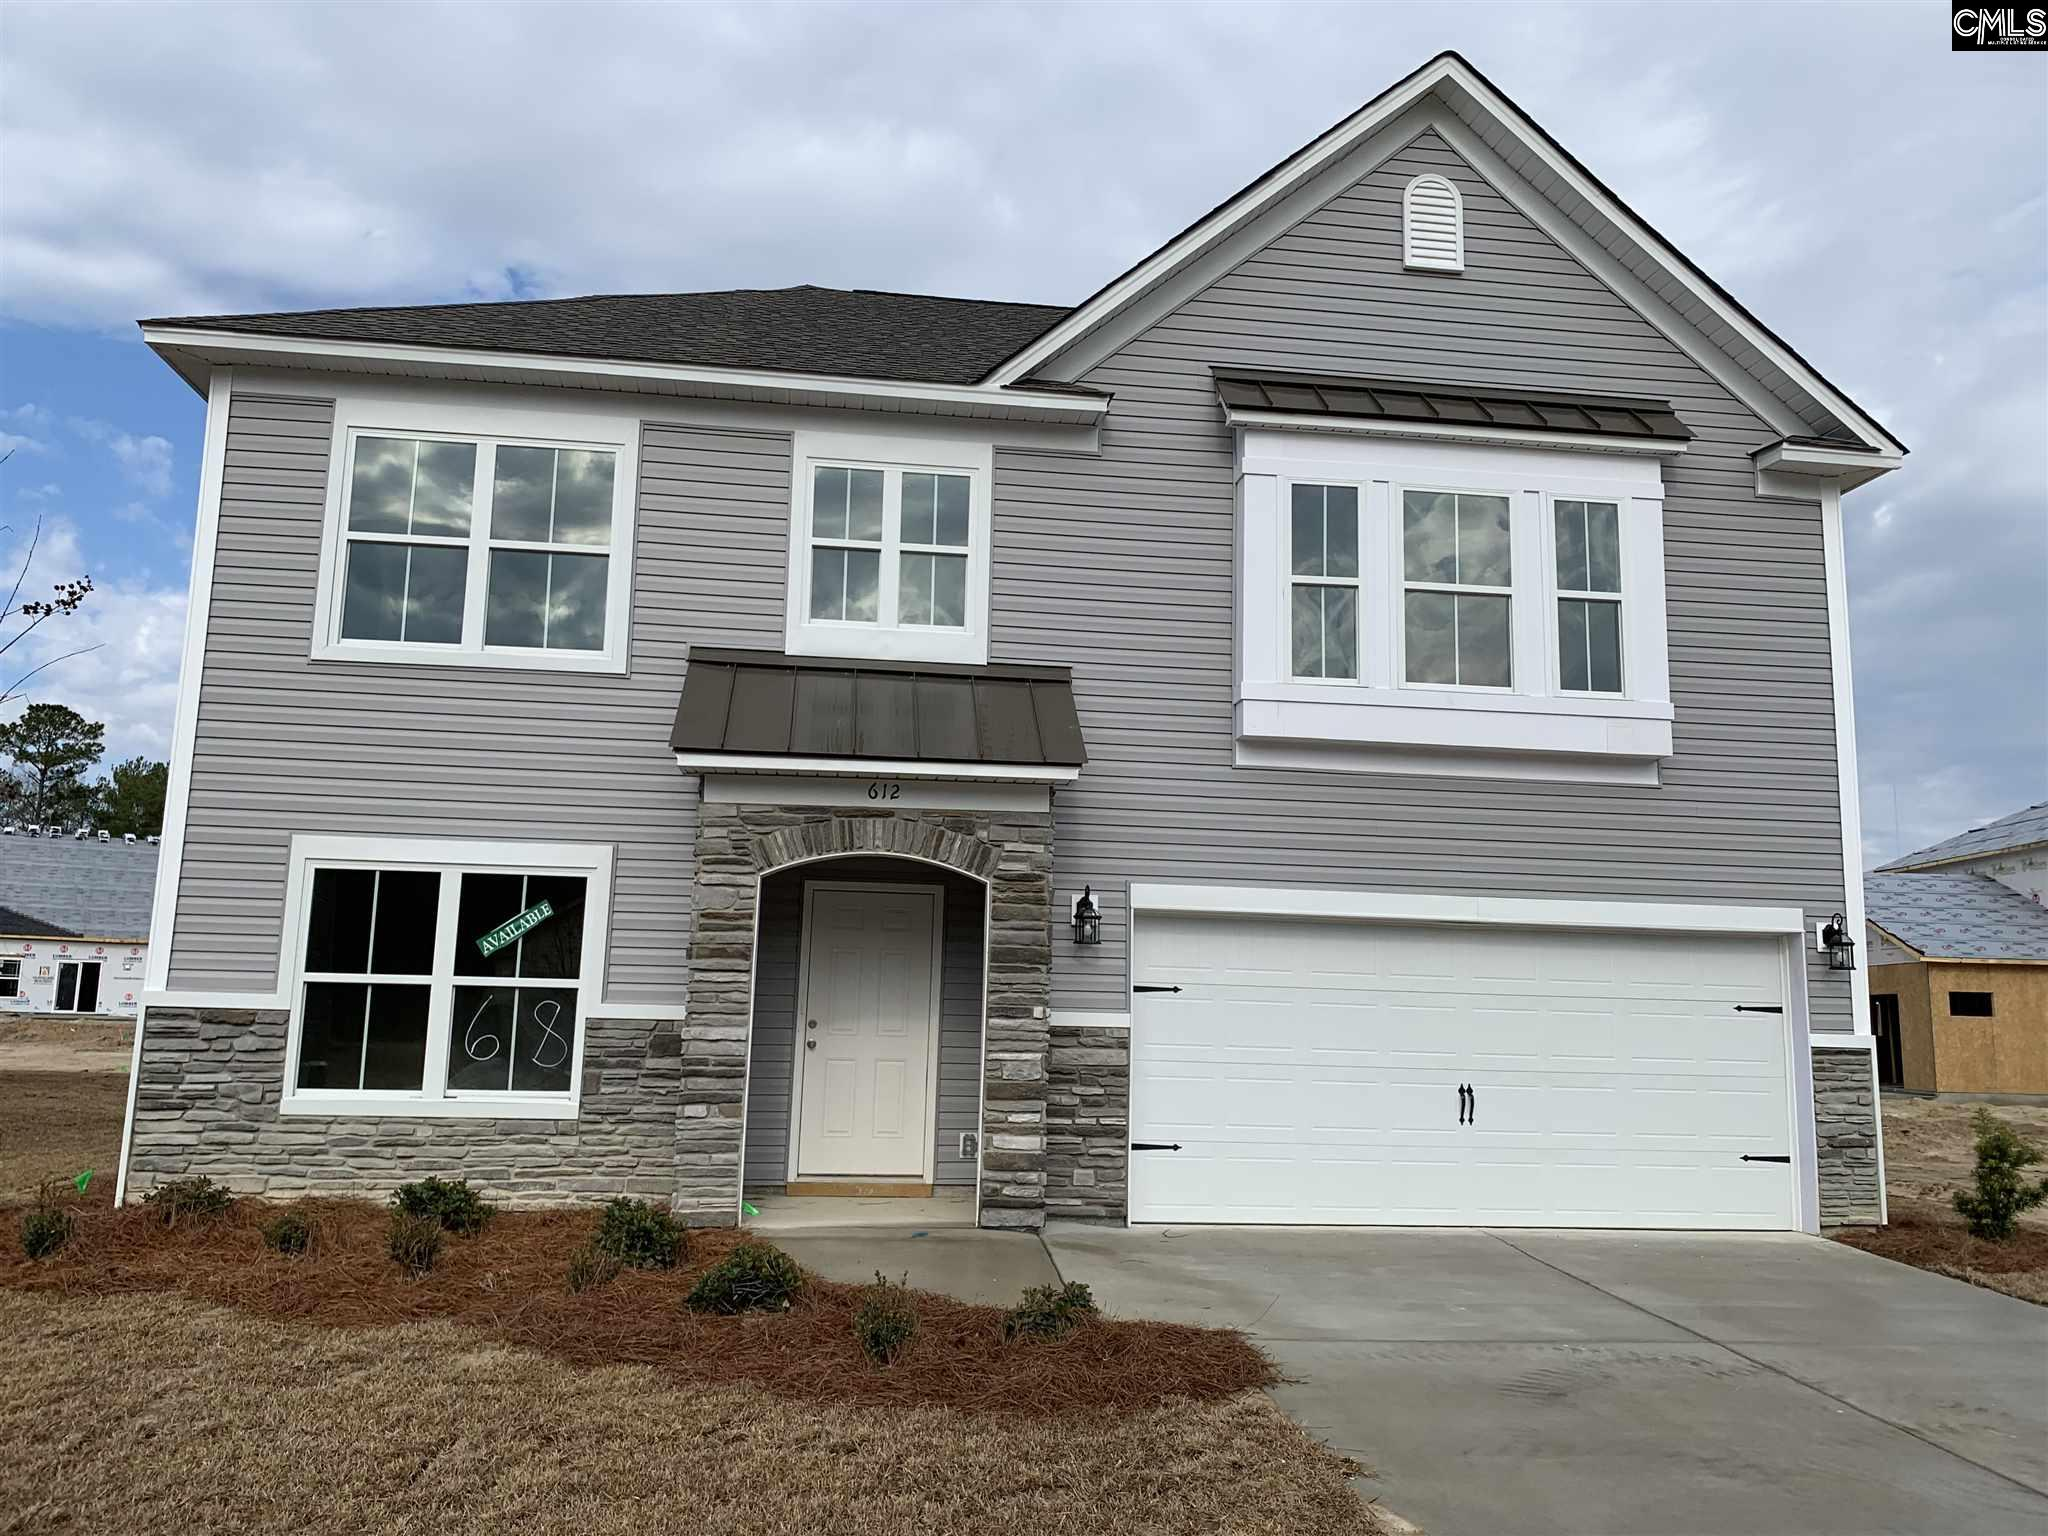 612 Watershed Columbia, SC 29223